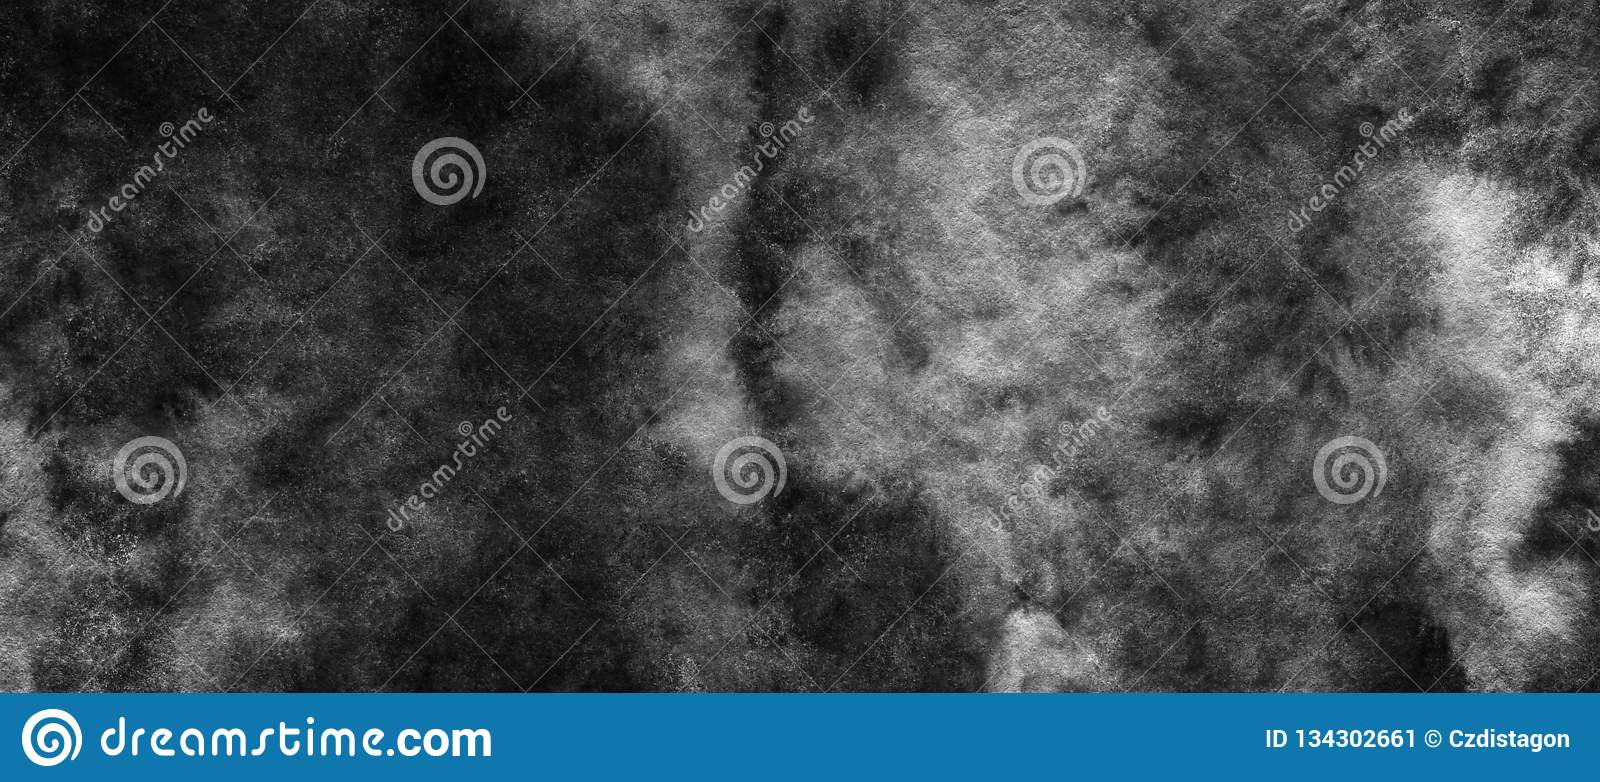 Black And White Dark Abstract Watercolor Background For Textures